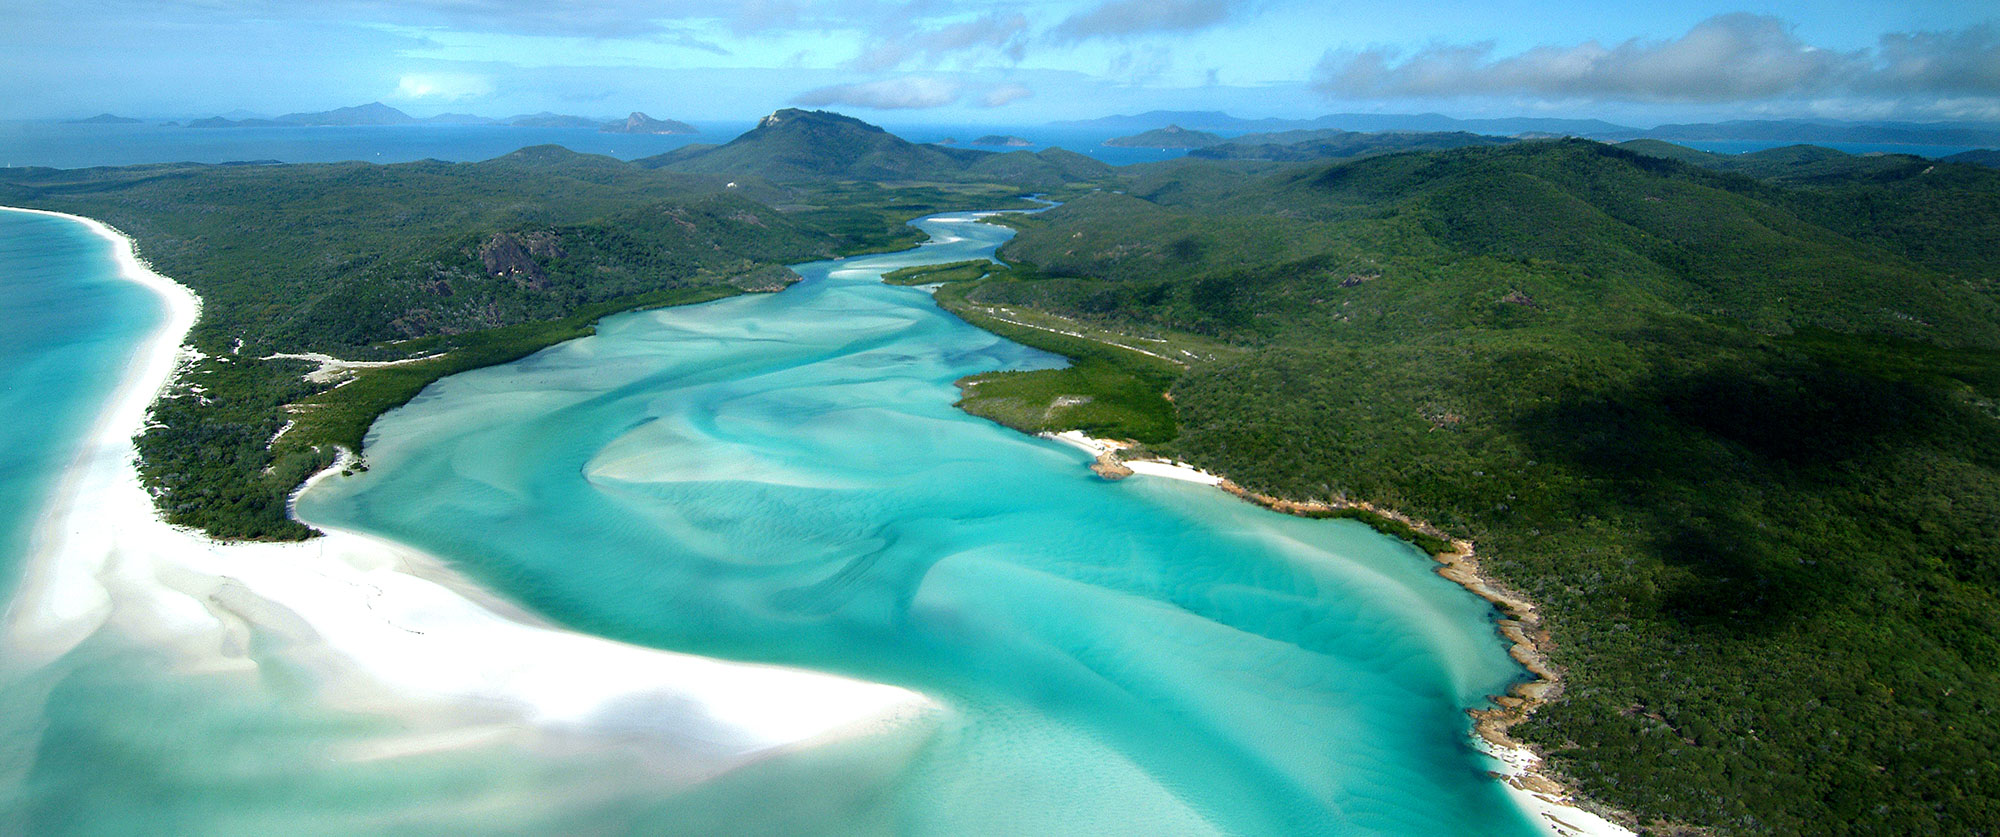 Australia Highlights and Tasmania Vacation - Whitehaven Beach